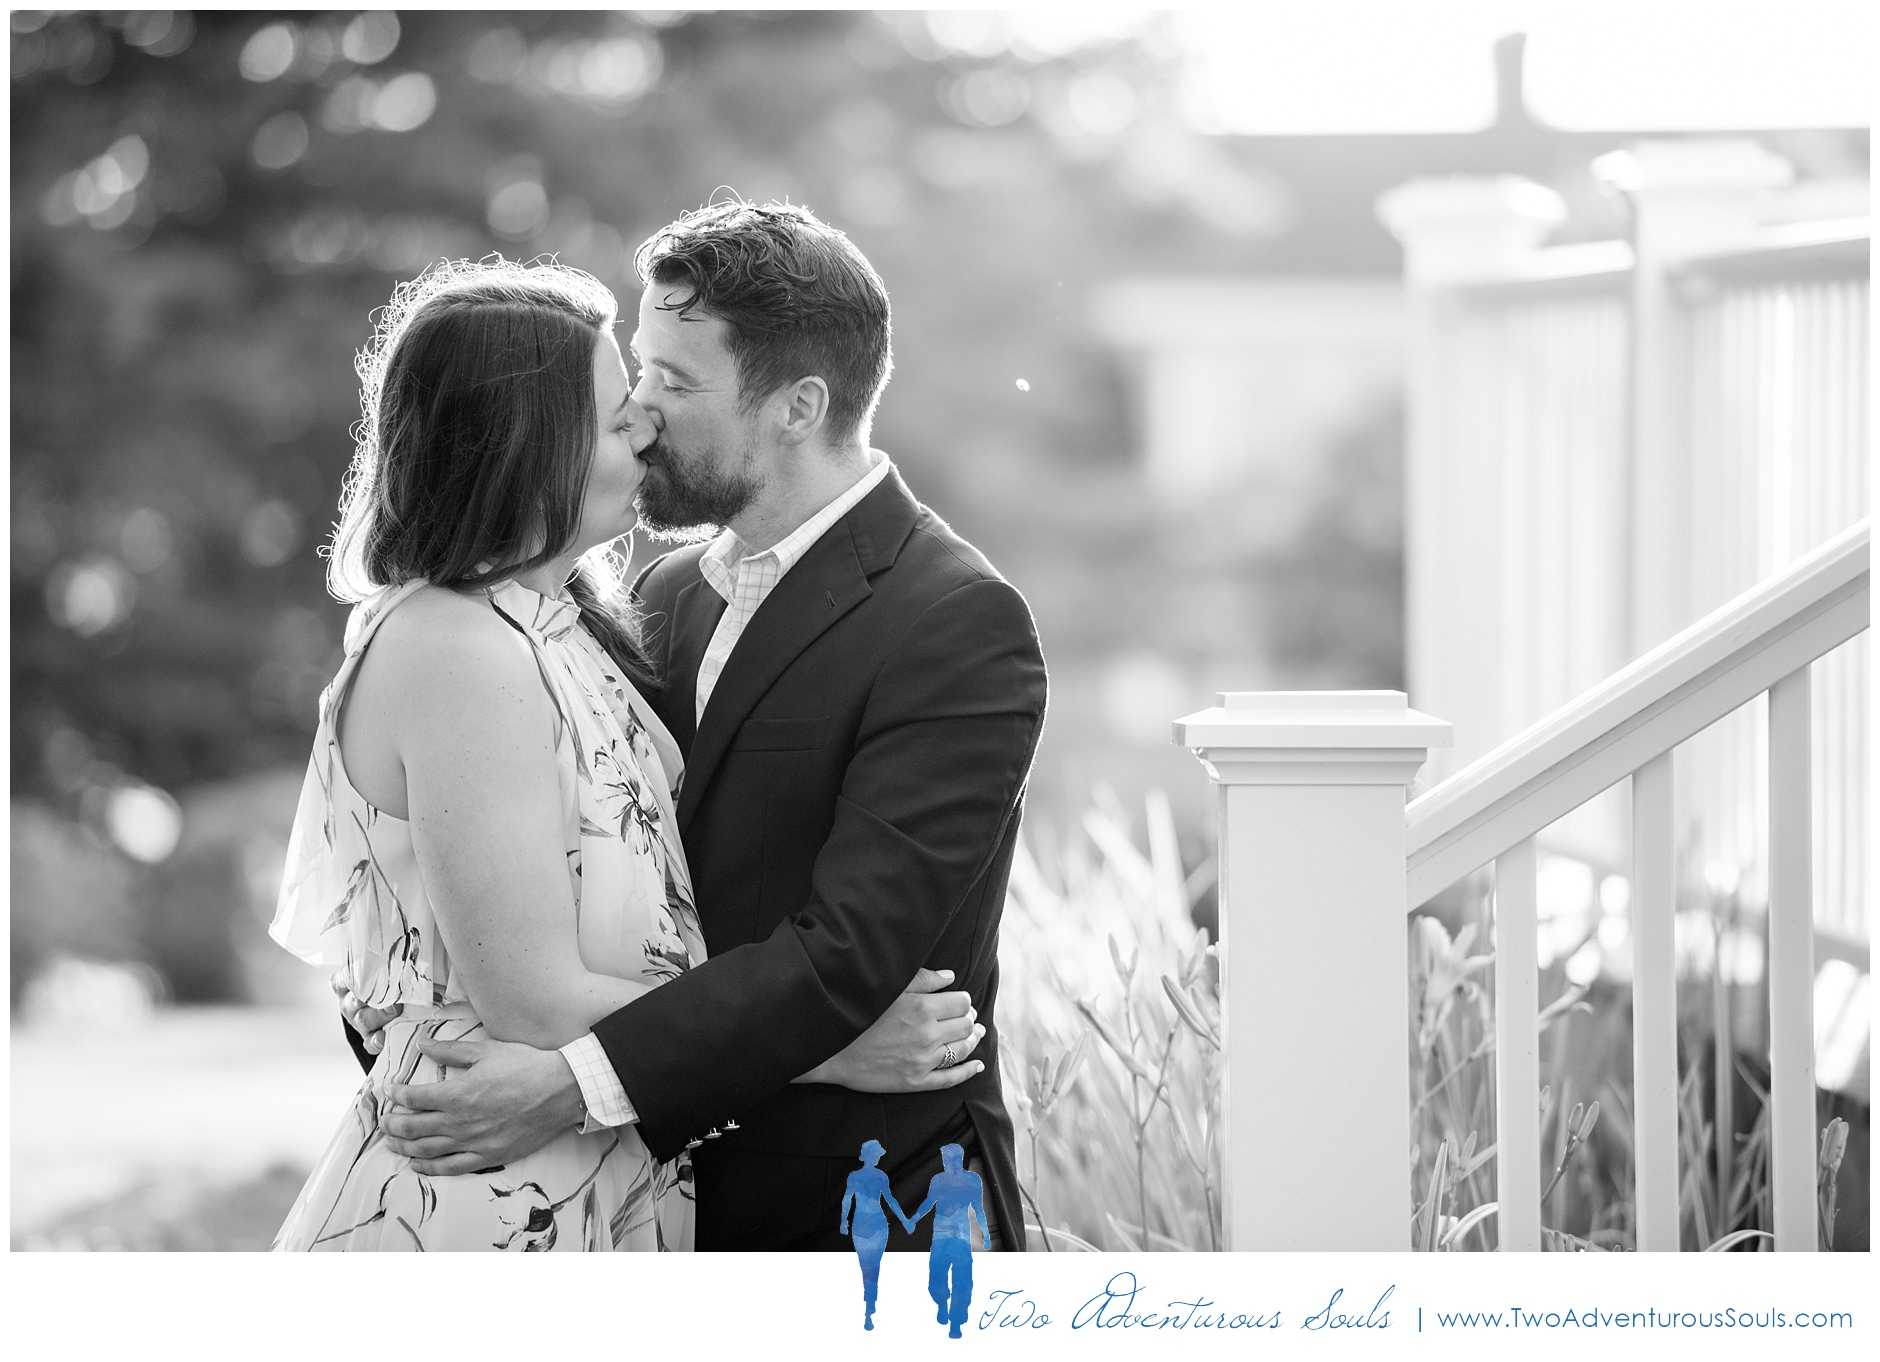 070818 - Leanne & Tyler - engaged-30_Boothbay Harbor Wedding Photographers, Boothbay Engagement Session.jpg